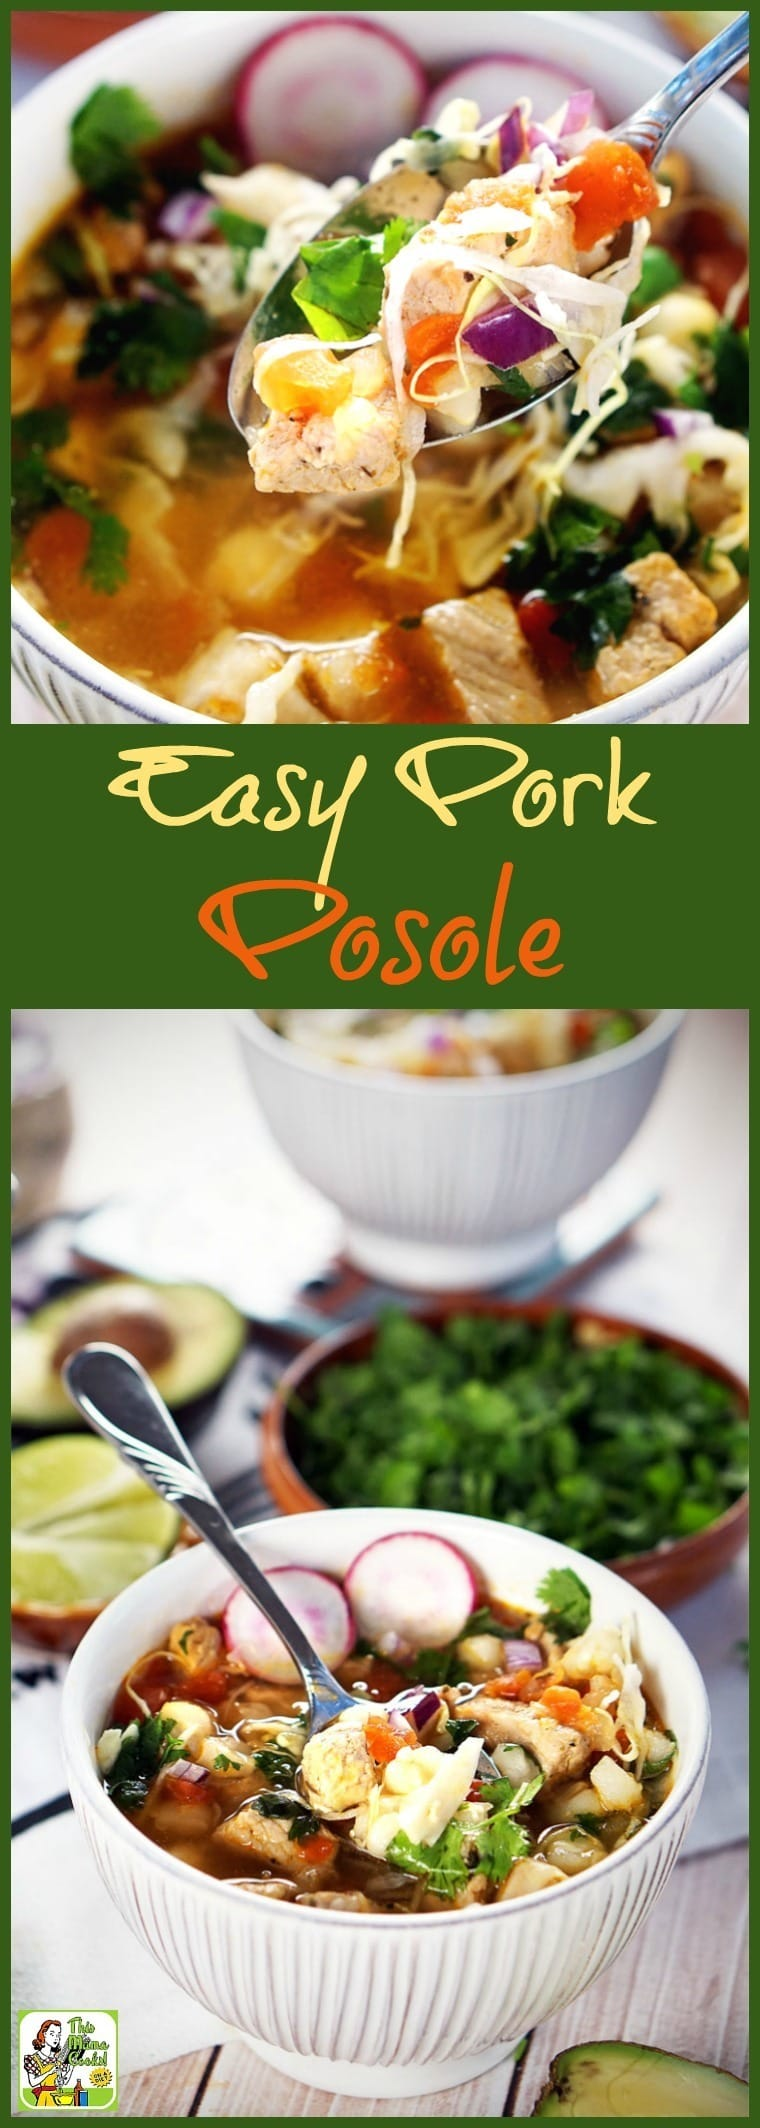 Make this Easy Pork Posole in less than 30 minutes. Gluten free, perfectly spicy, and delicious!